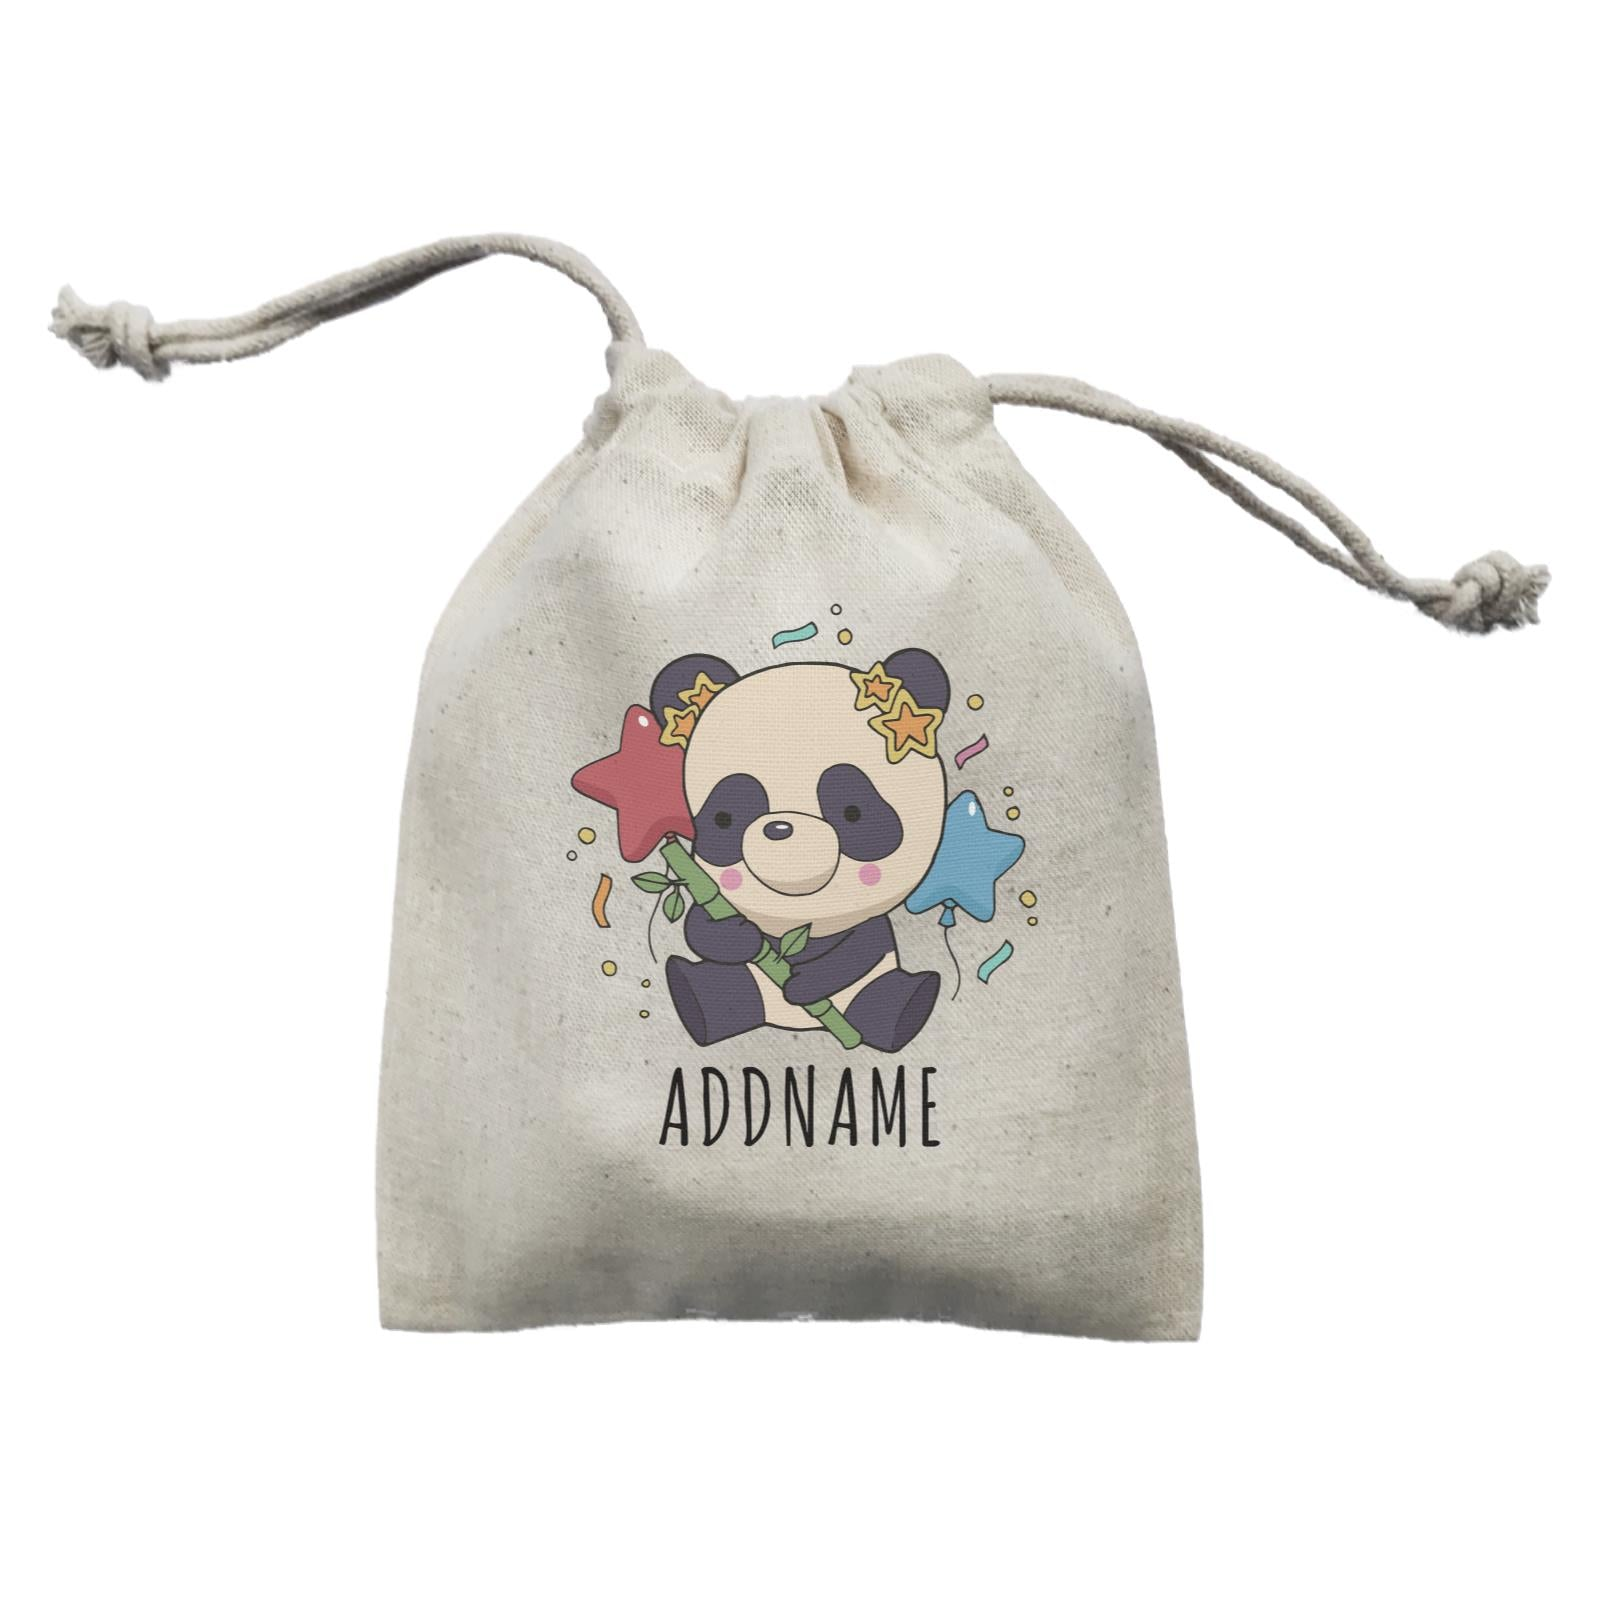 Birthday Sketch Animals Panda with Party Hat Holding Bamboo Addname Mini Accessories Mini Pouch